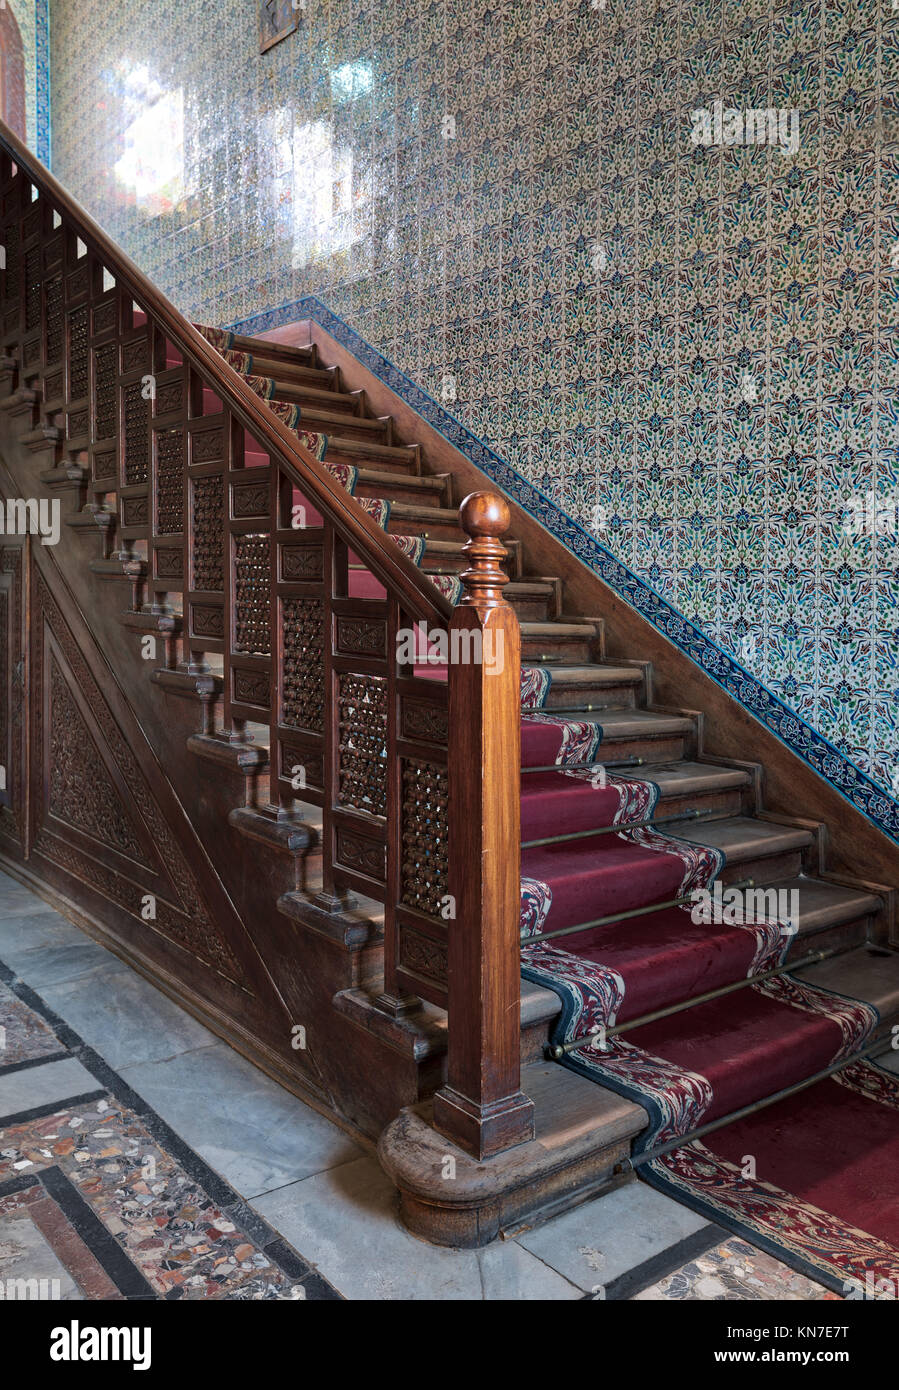 Cairo, Egypt - December 2 2017: Wooden staircase with ornate red carpet, decorated wooden balustrade and Turkish - Stock Image